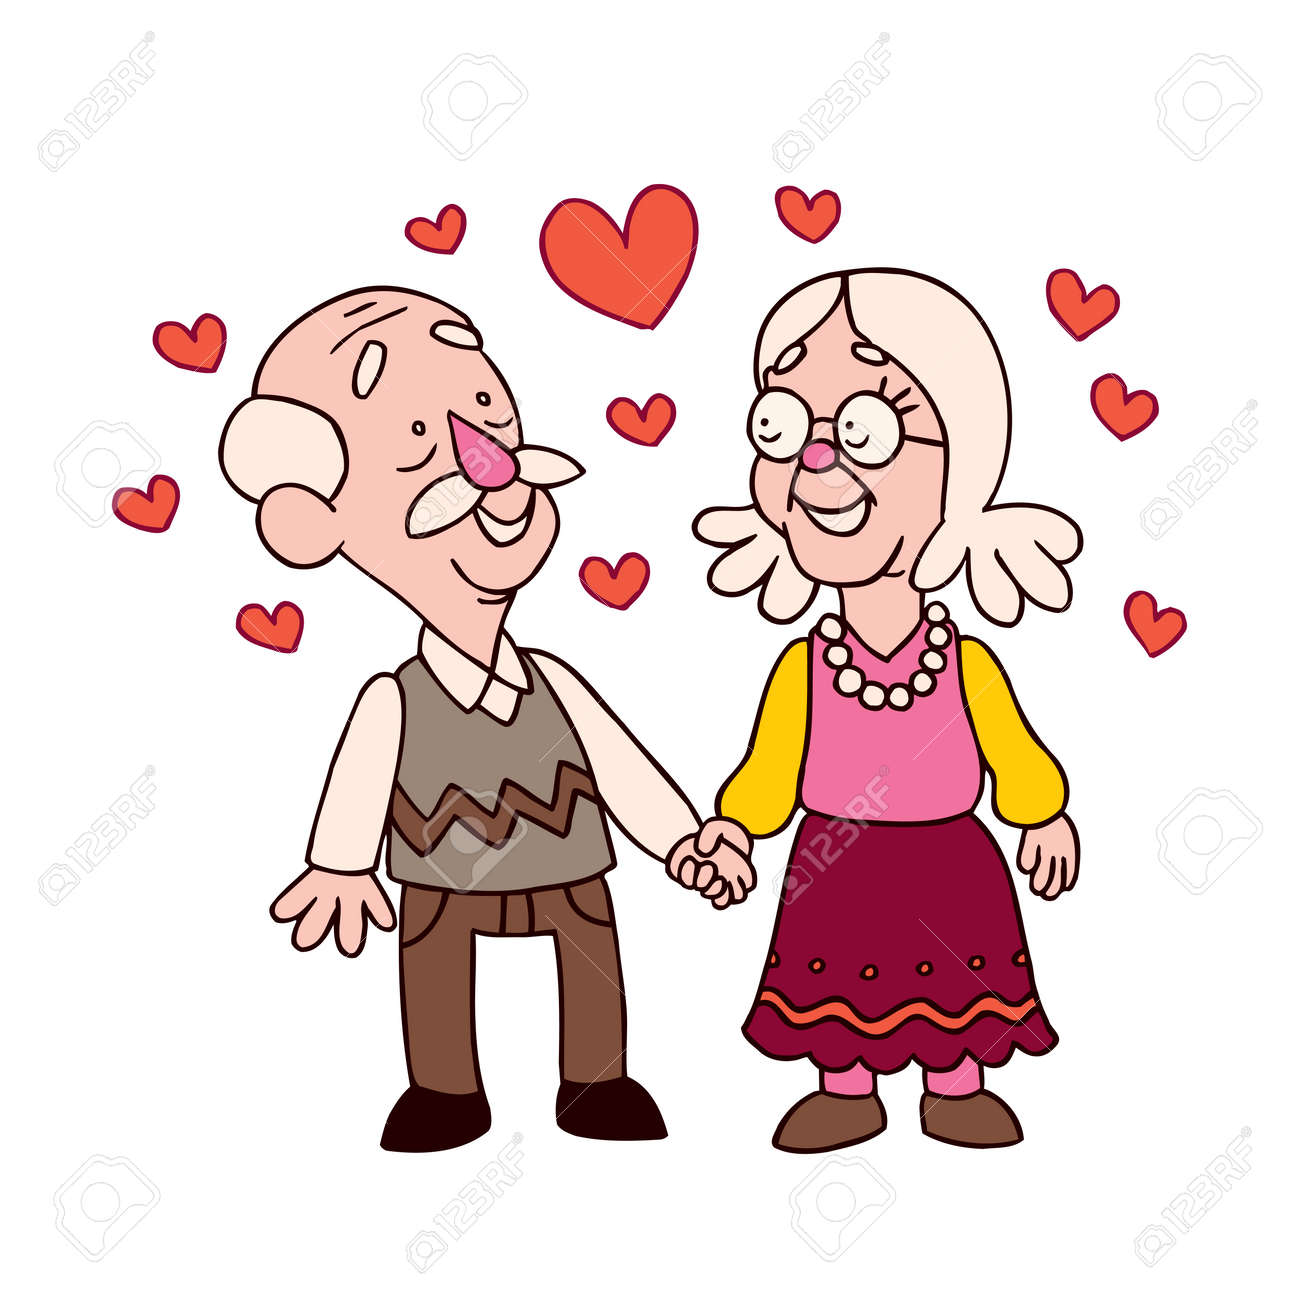 15 047 old couple cliparts stock vector and royalty free old couple rh 123rf com old couple clipart black and white old married couple clipart